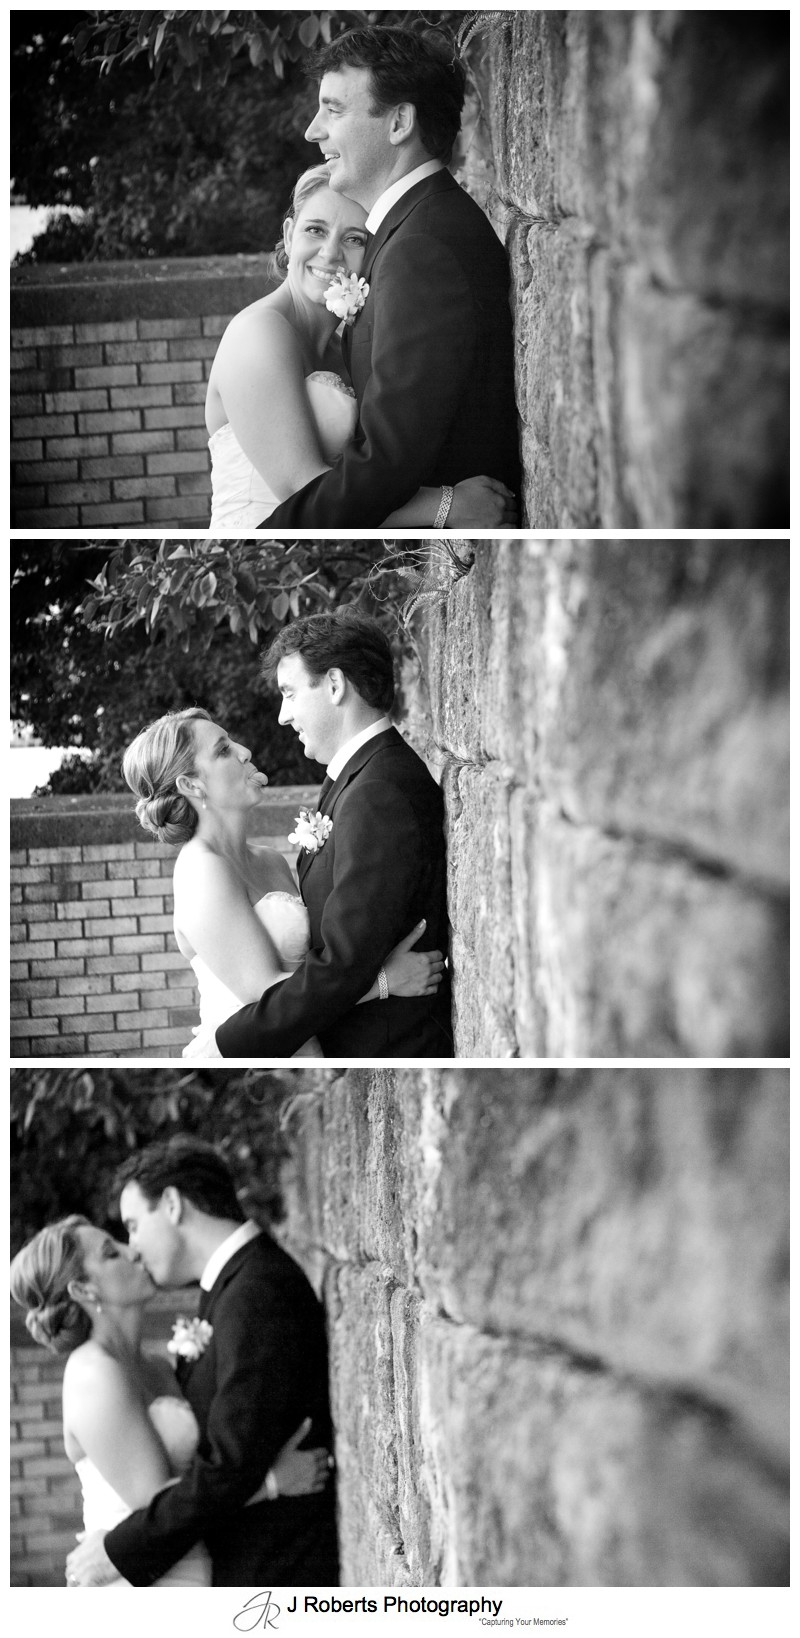 B&W portraits of a bride and groom - wedding photography sydney